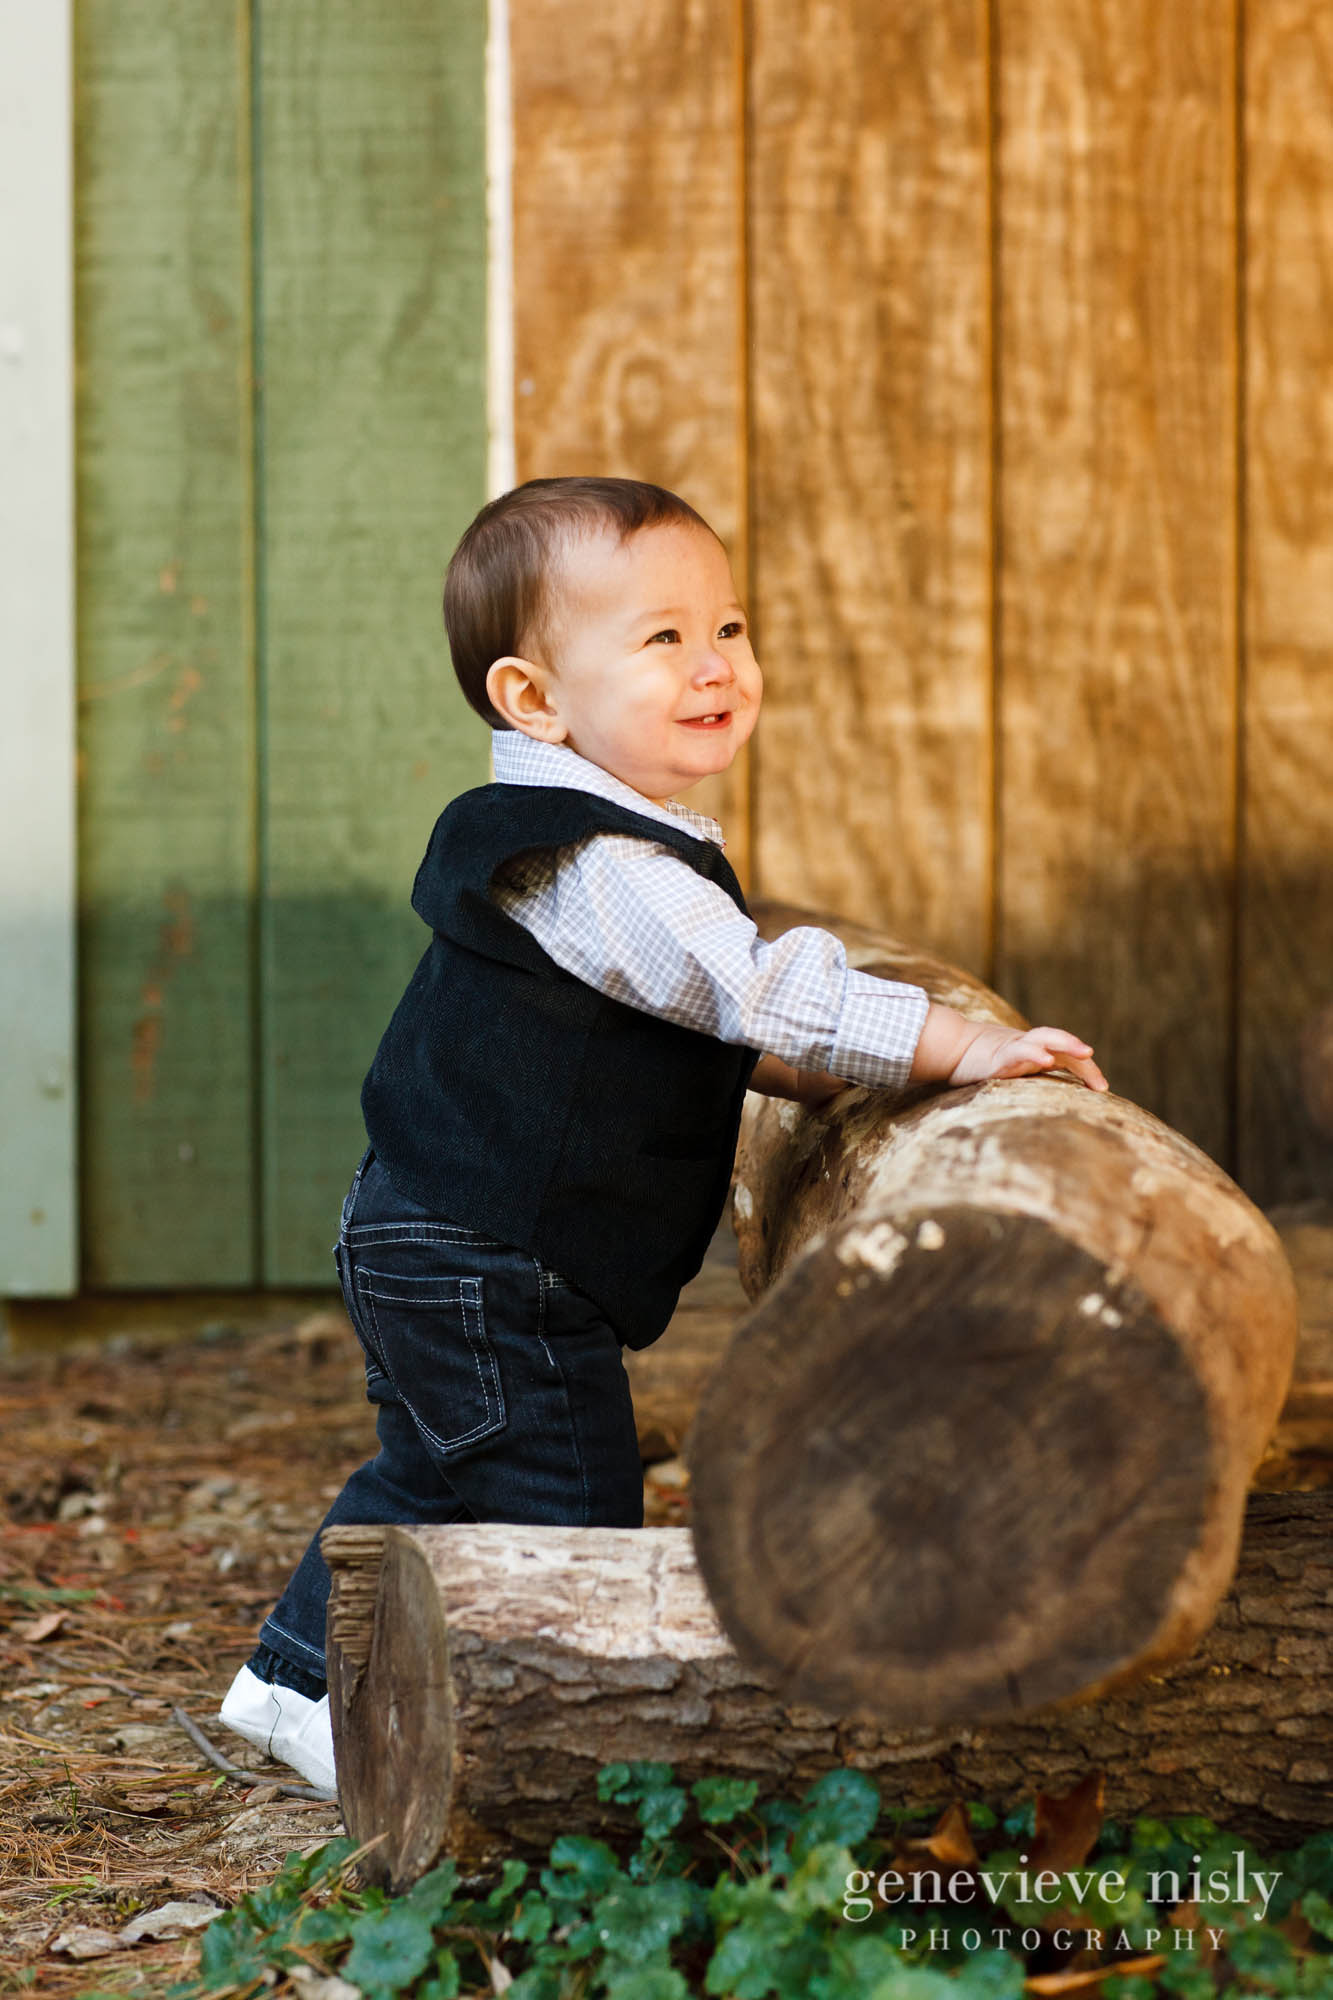 Copyright Genevieve Nisly Photography, Family, Kids, Portraits